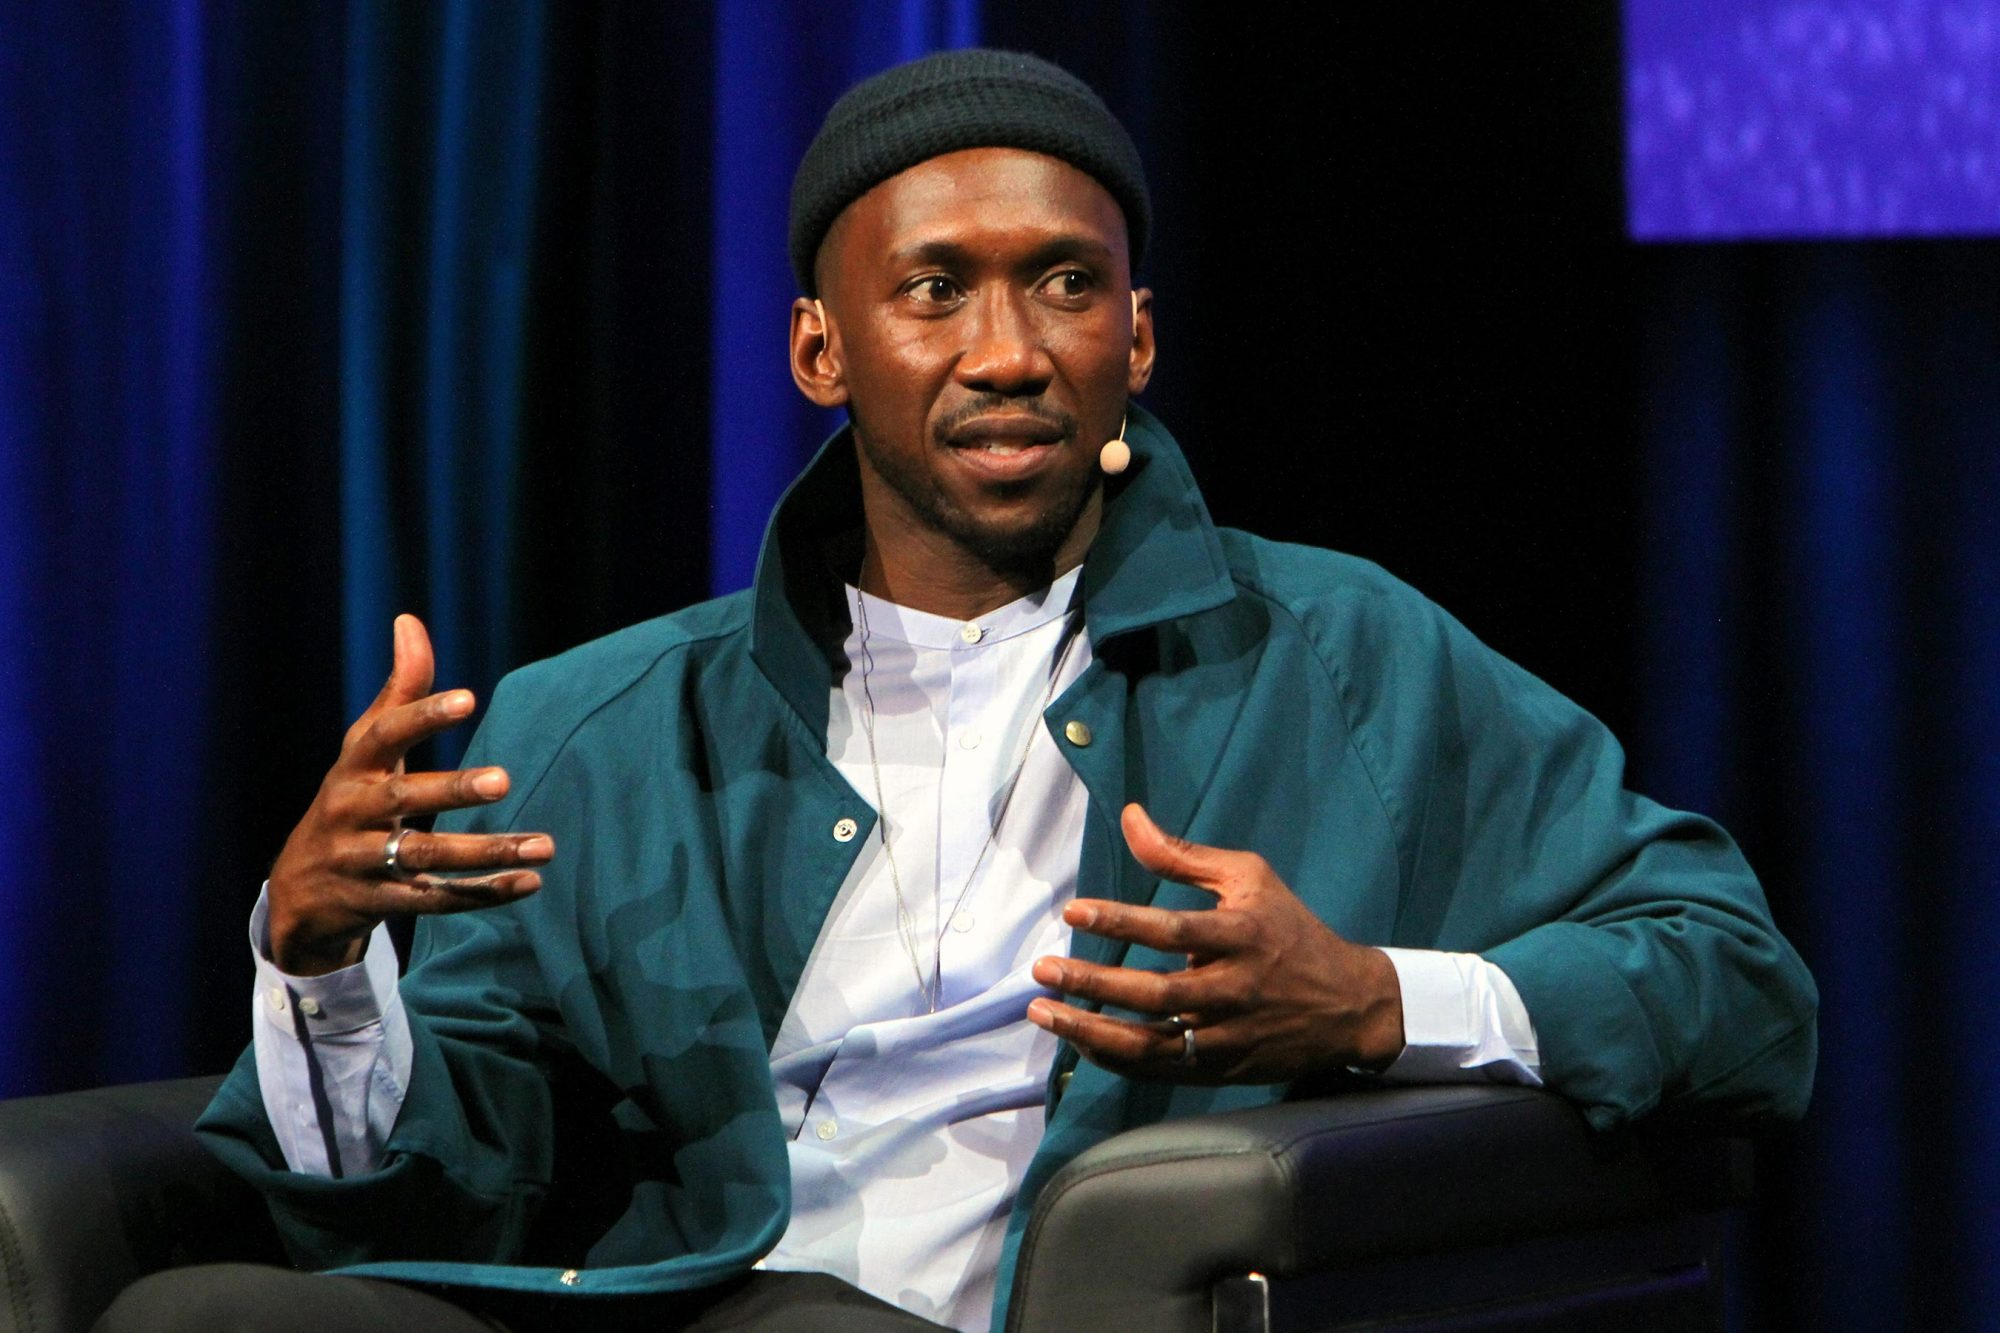 2018 Toronto International Film Festival - In Conversation With...Mahershala Ali